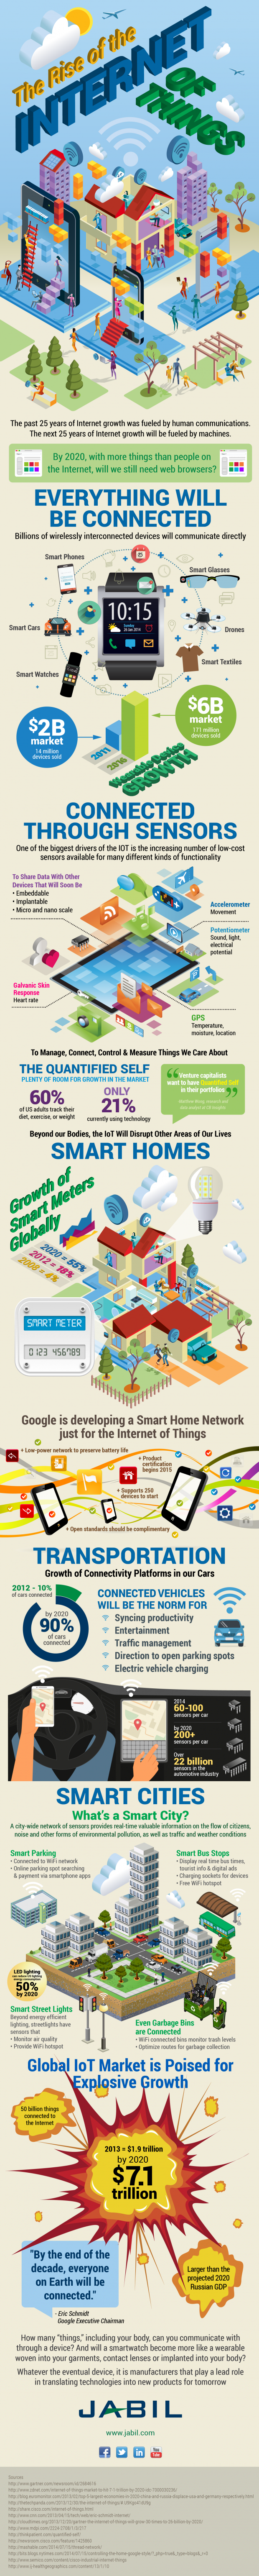 Internet-of-Things-Infographic-v5-620x6158